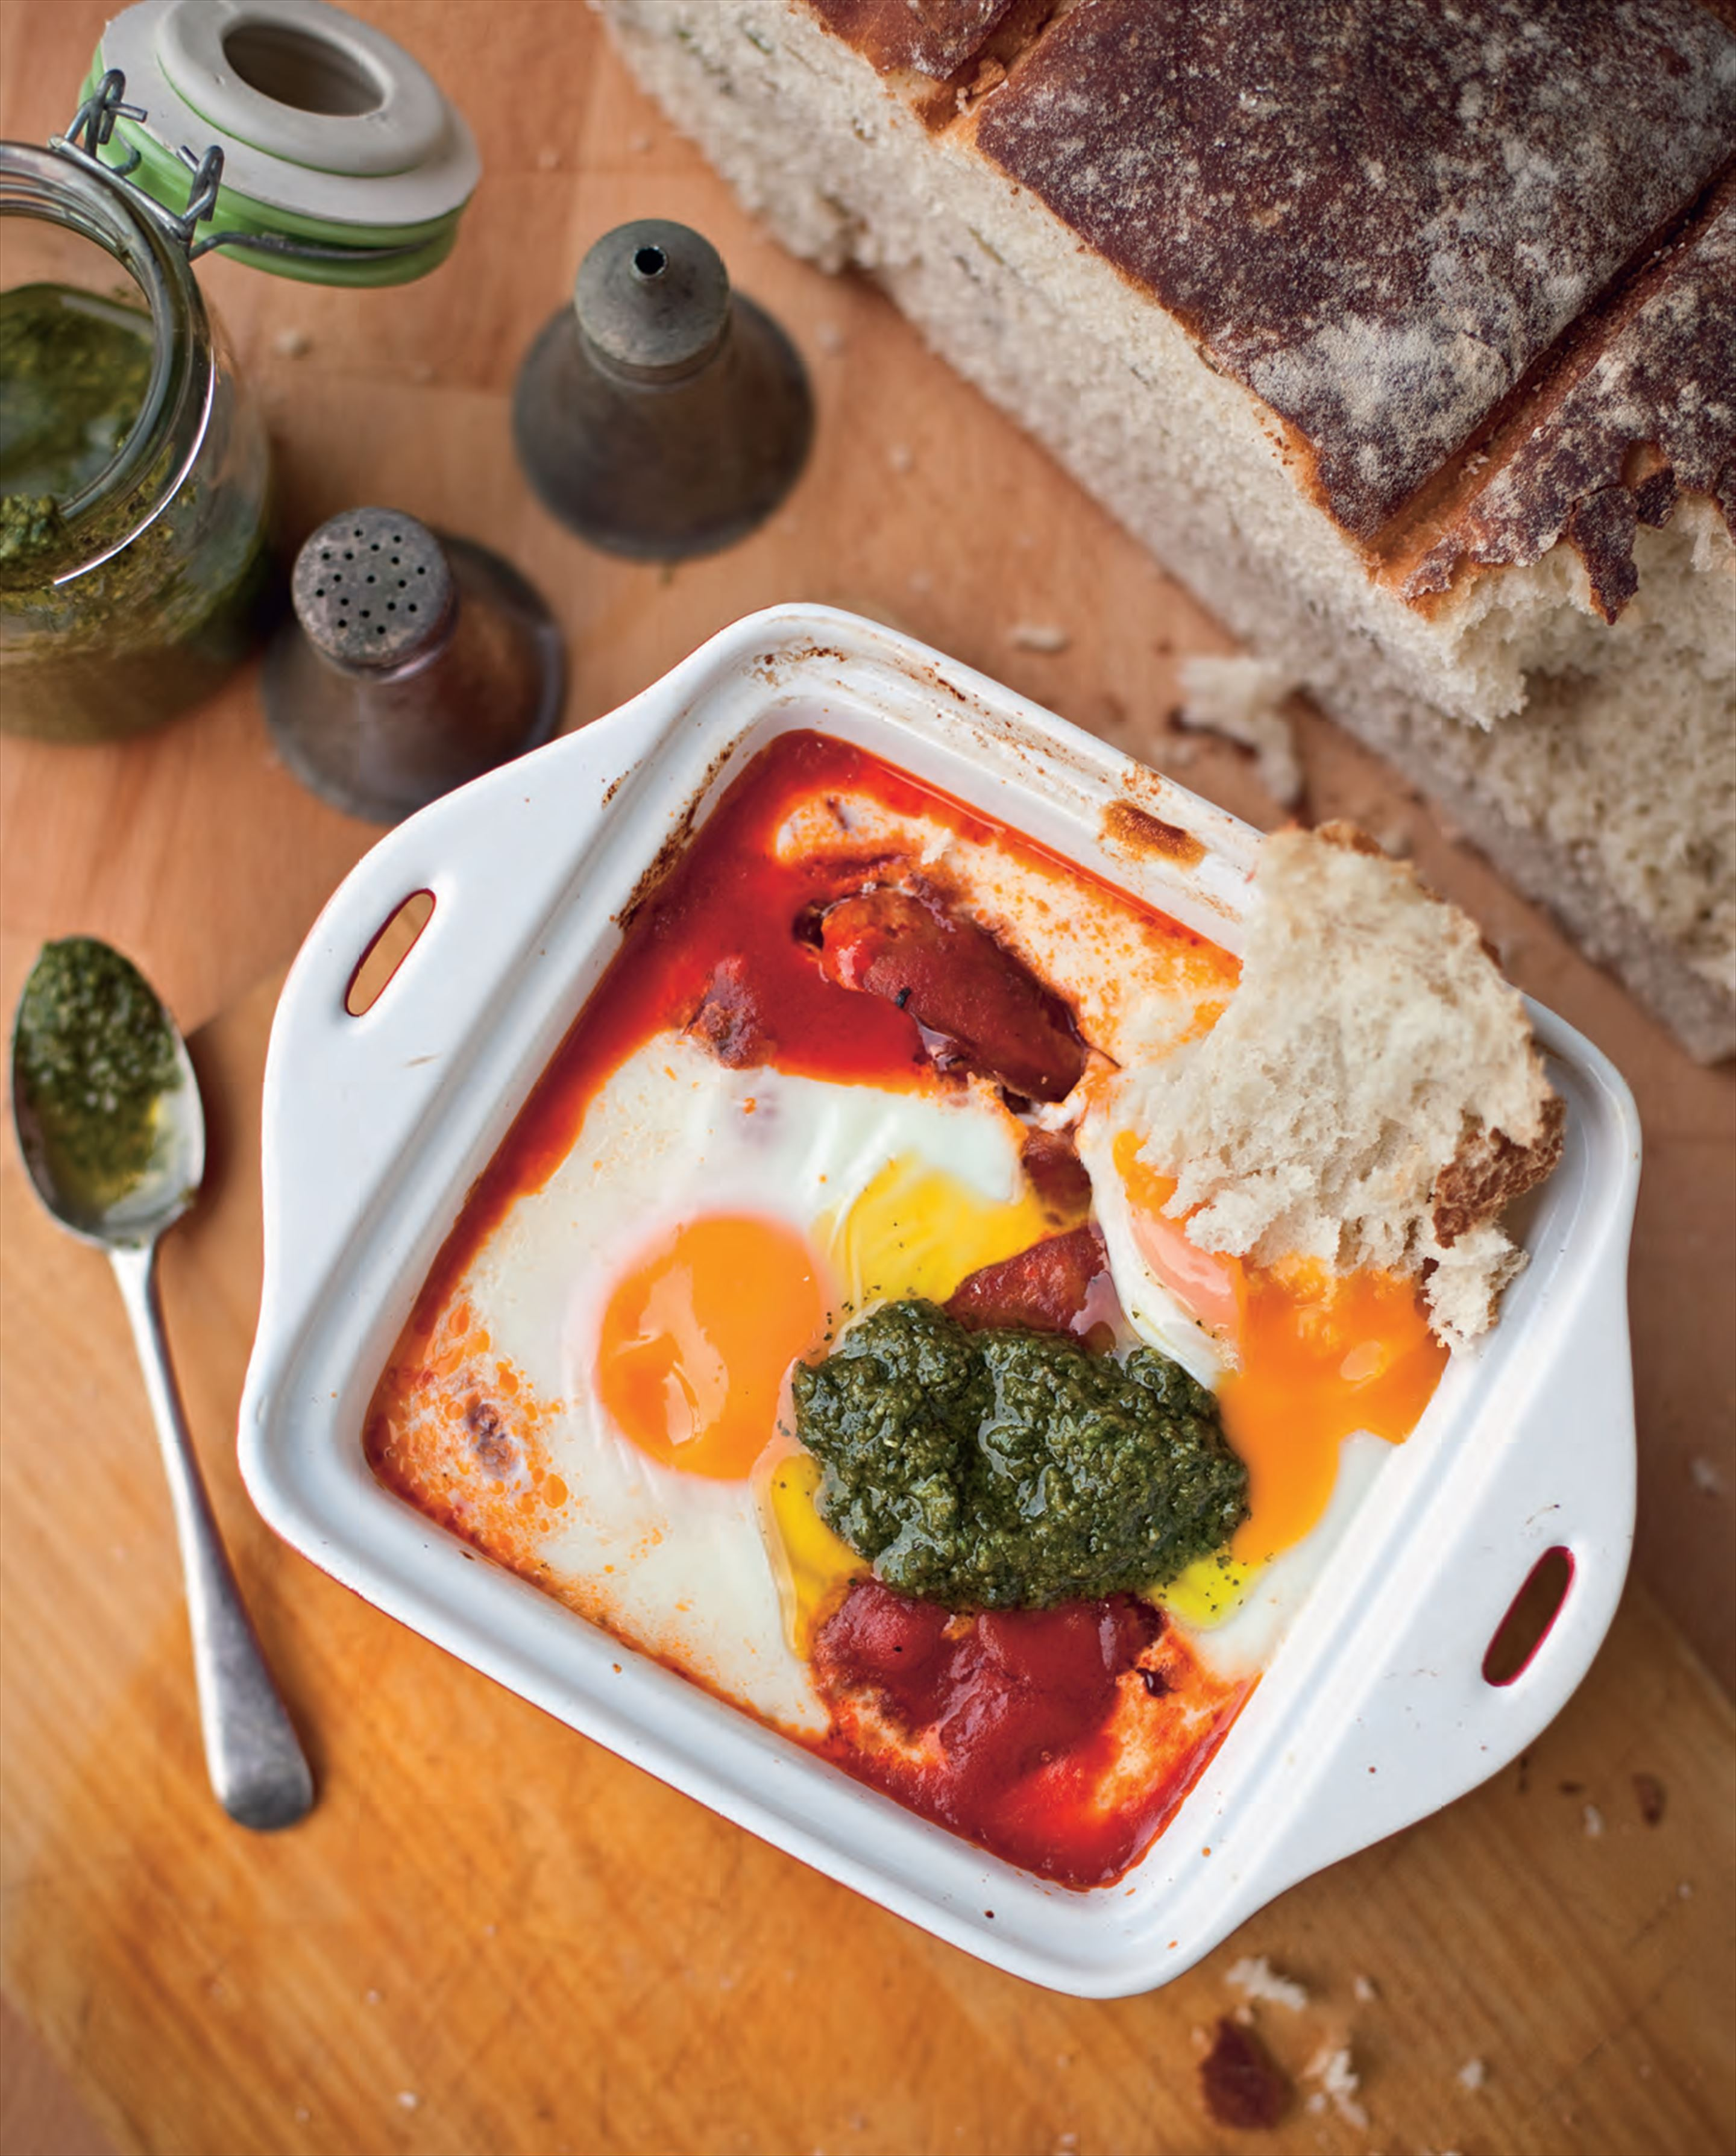 Baked eggs with chorizo, potatoes and basil pesto